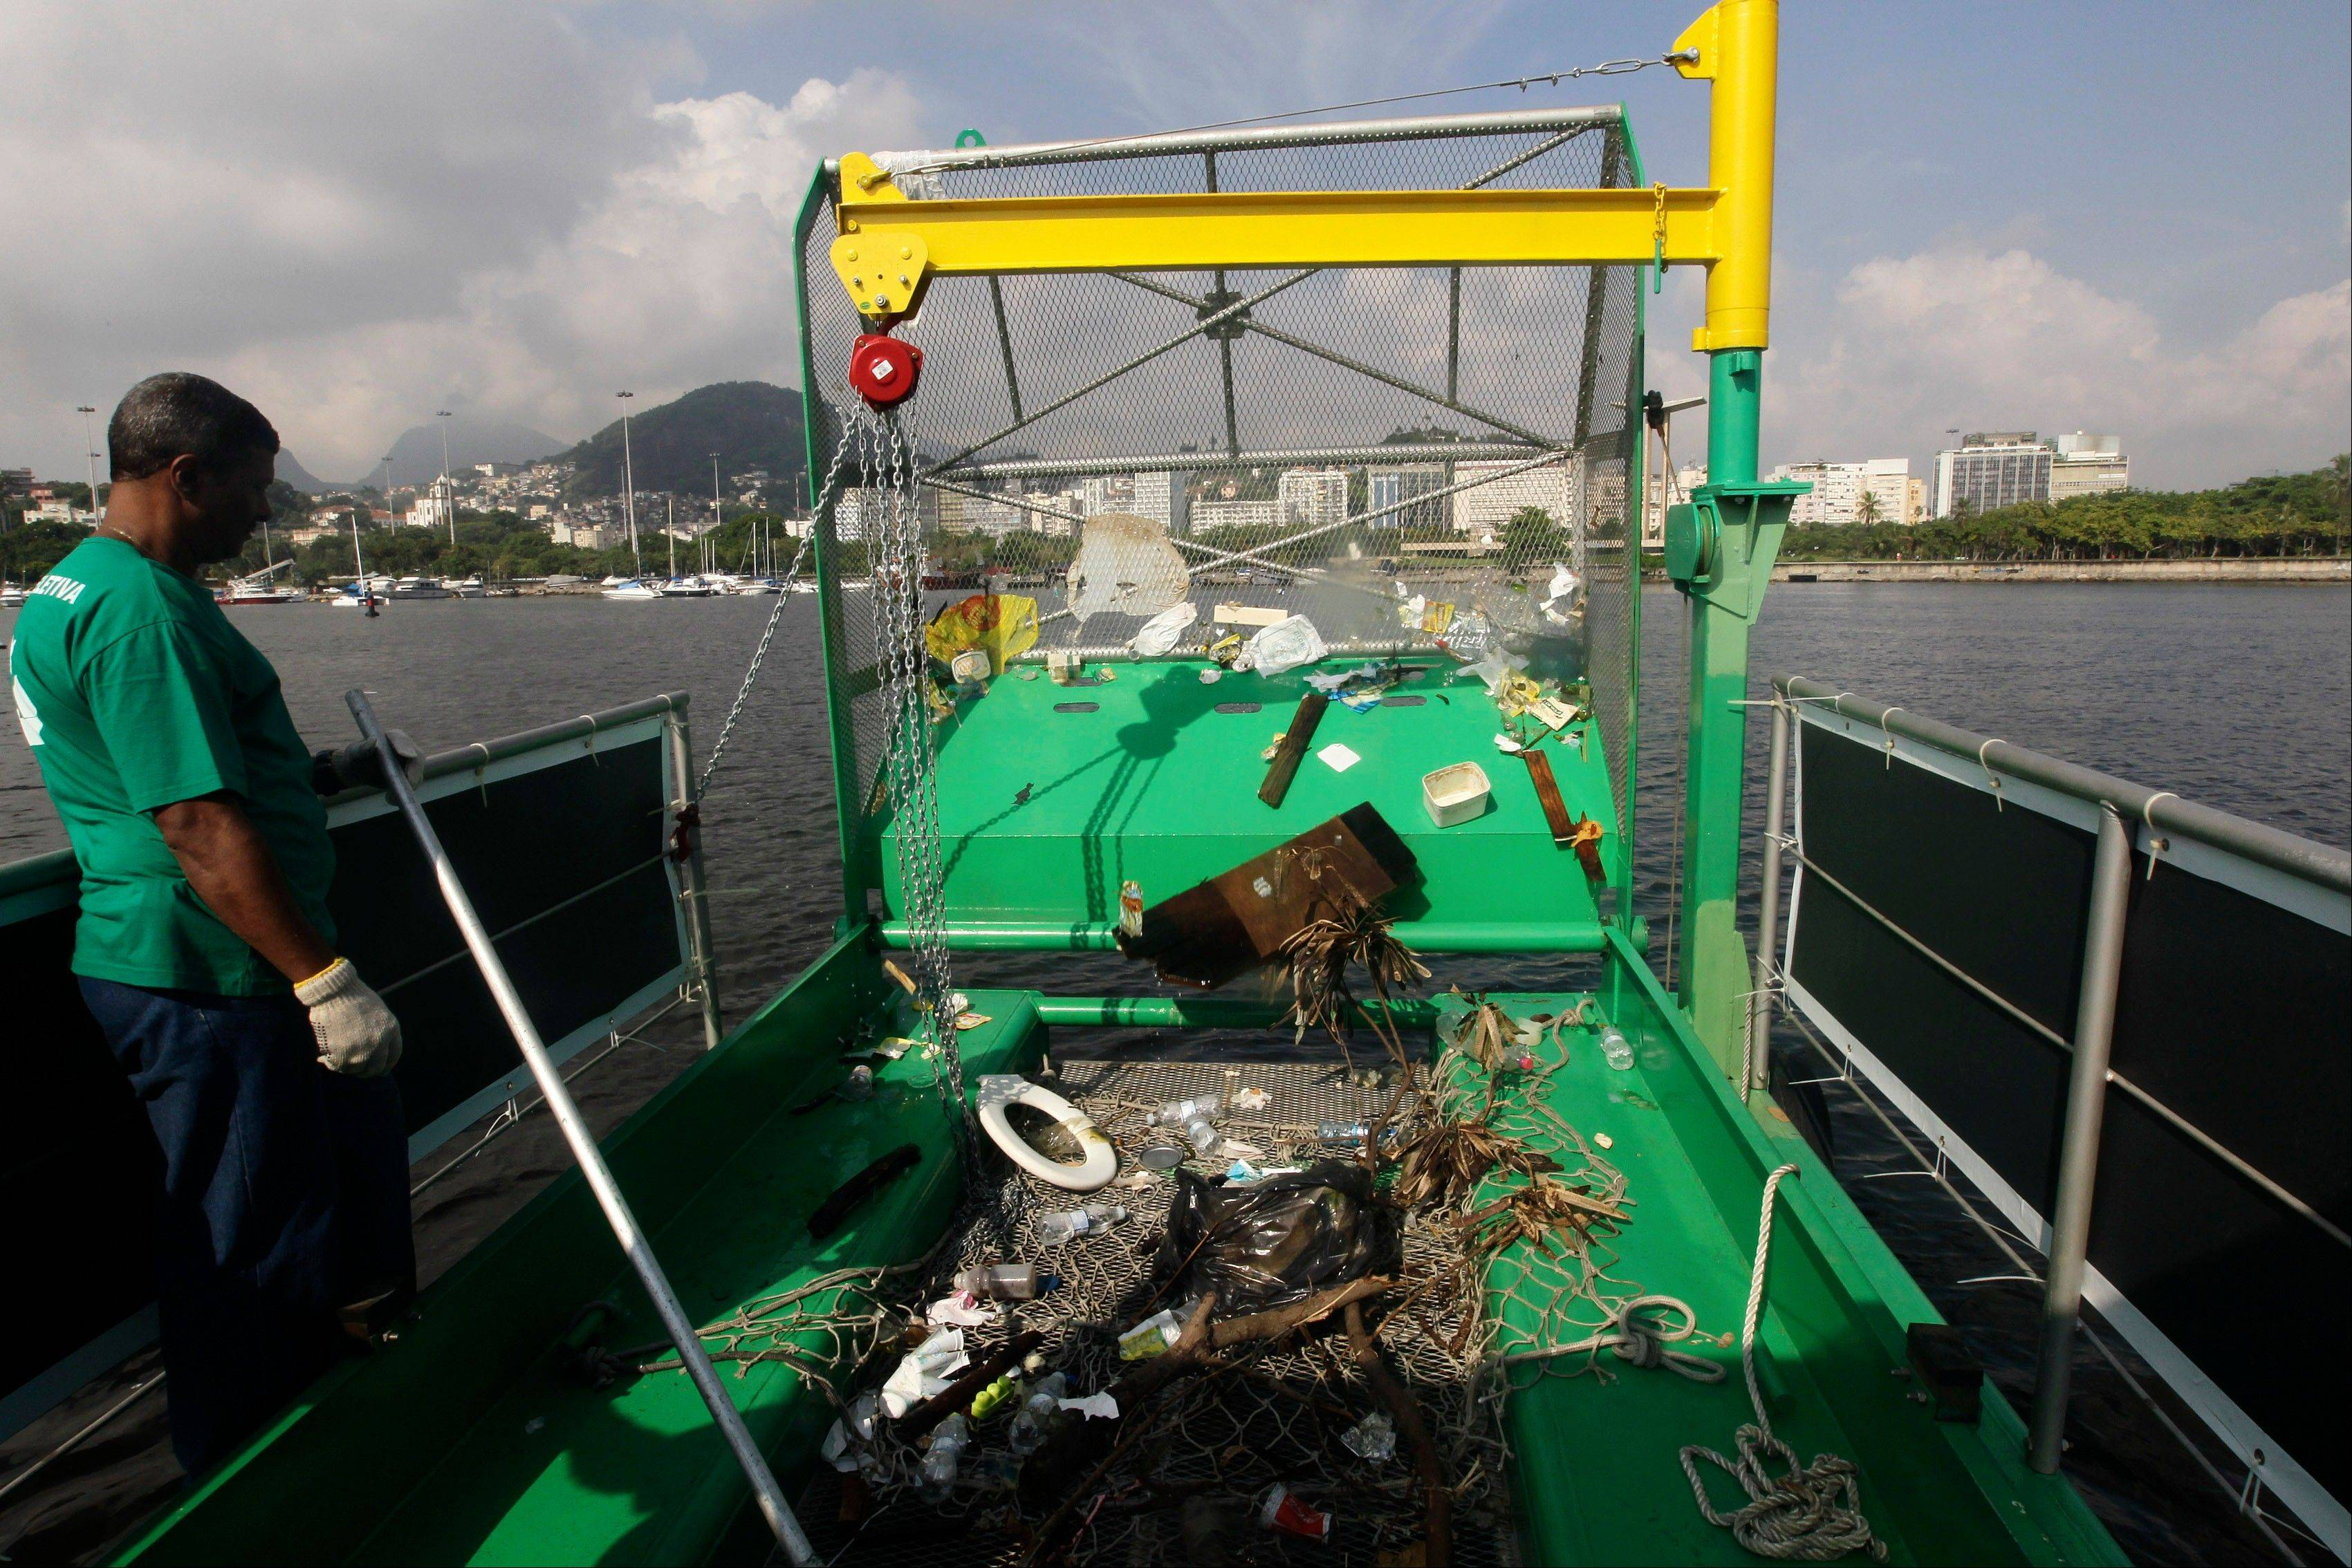 A worker stands next to trash collected by a garbage-collecting barge at the Guanabara Bay, in Rio de Janeiro, Brazil.